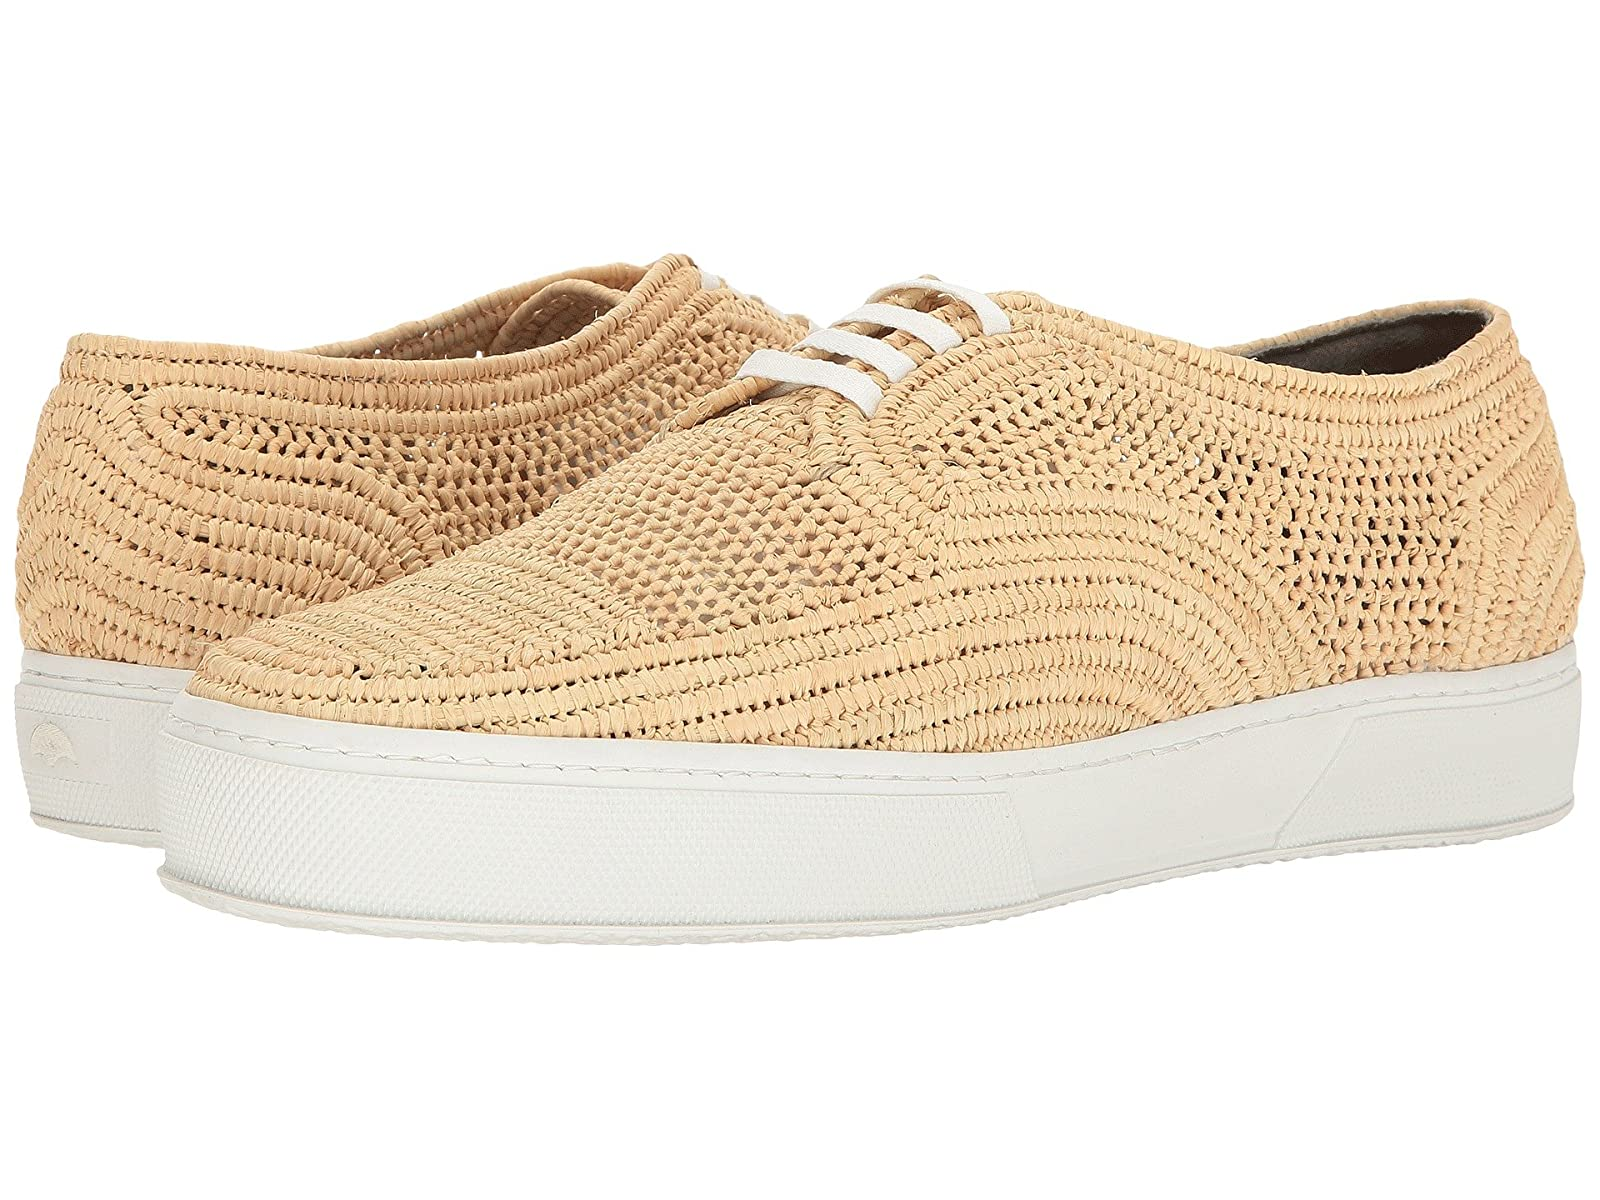 Clergerie Raffia LoaferCheap and distinctive eye-catching shoes